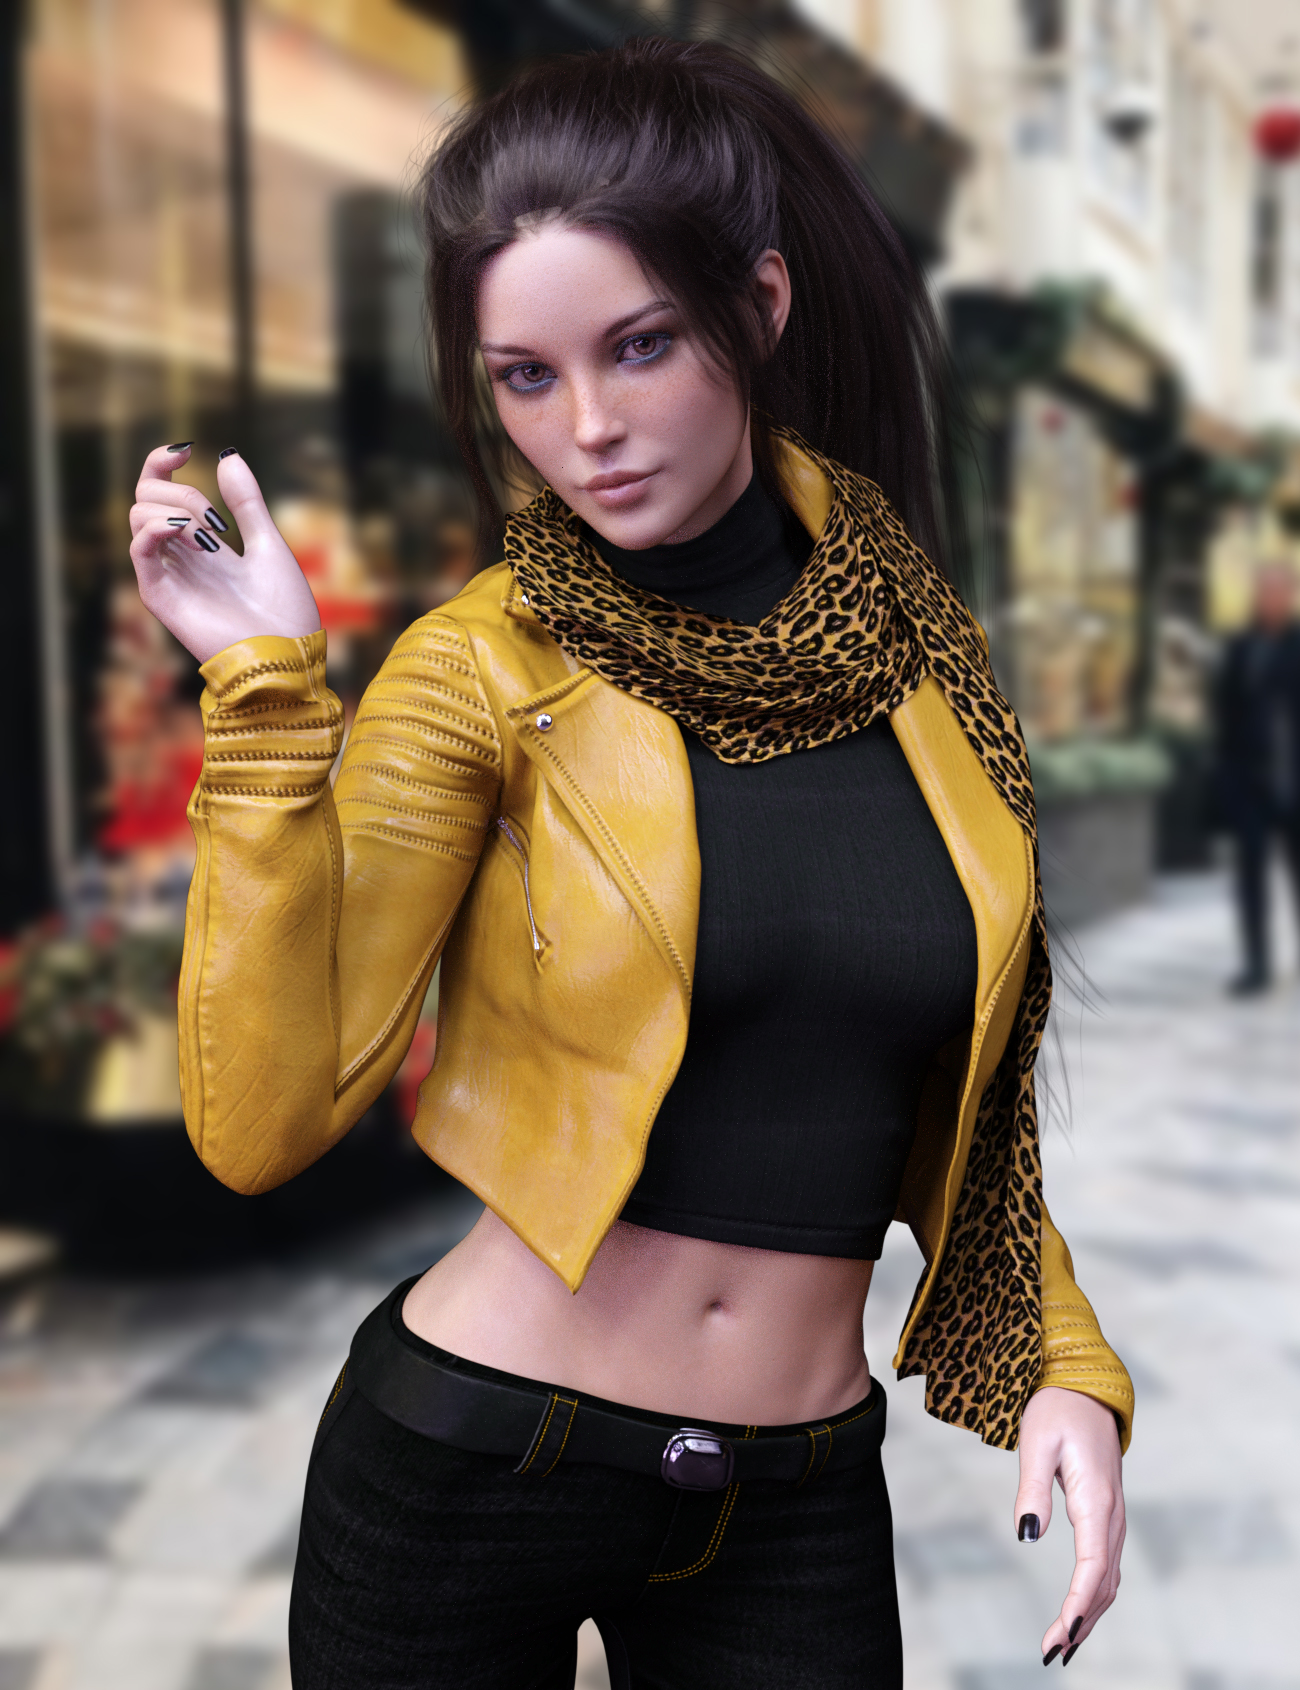 X-Fashion Sophisticated Jacket Outfit by: xtrart-3d, 3D Models by Daz 3D